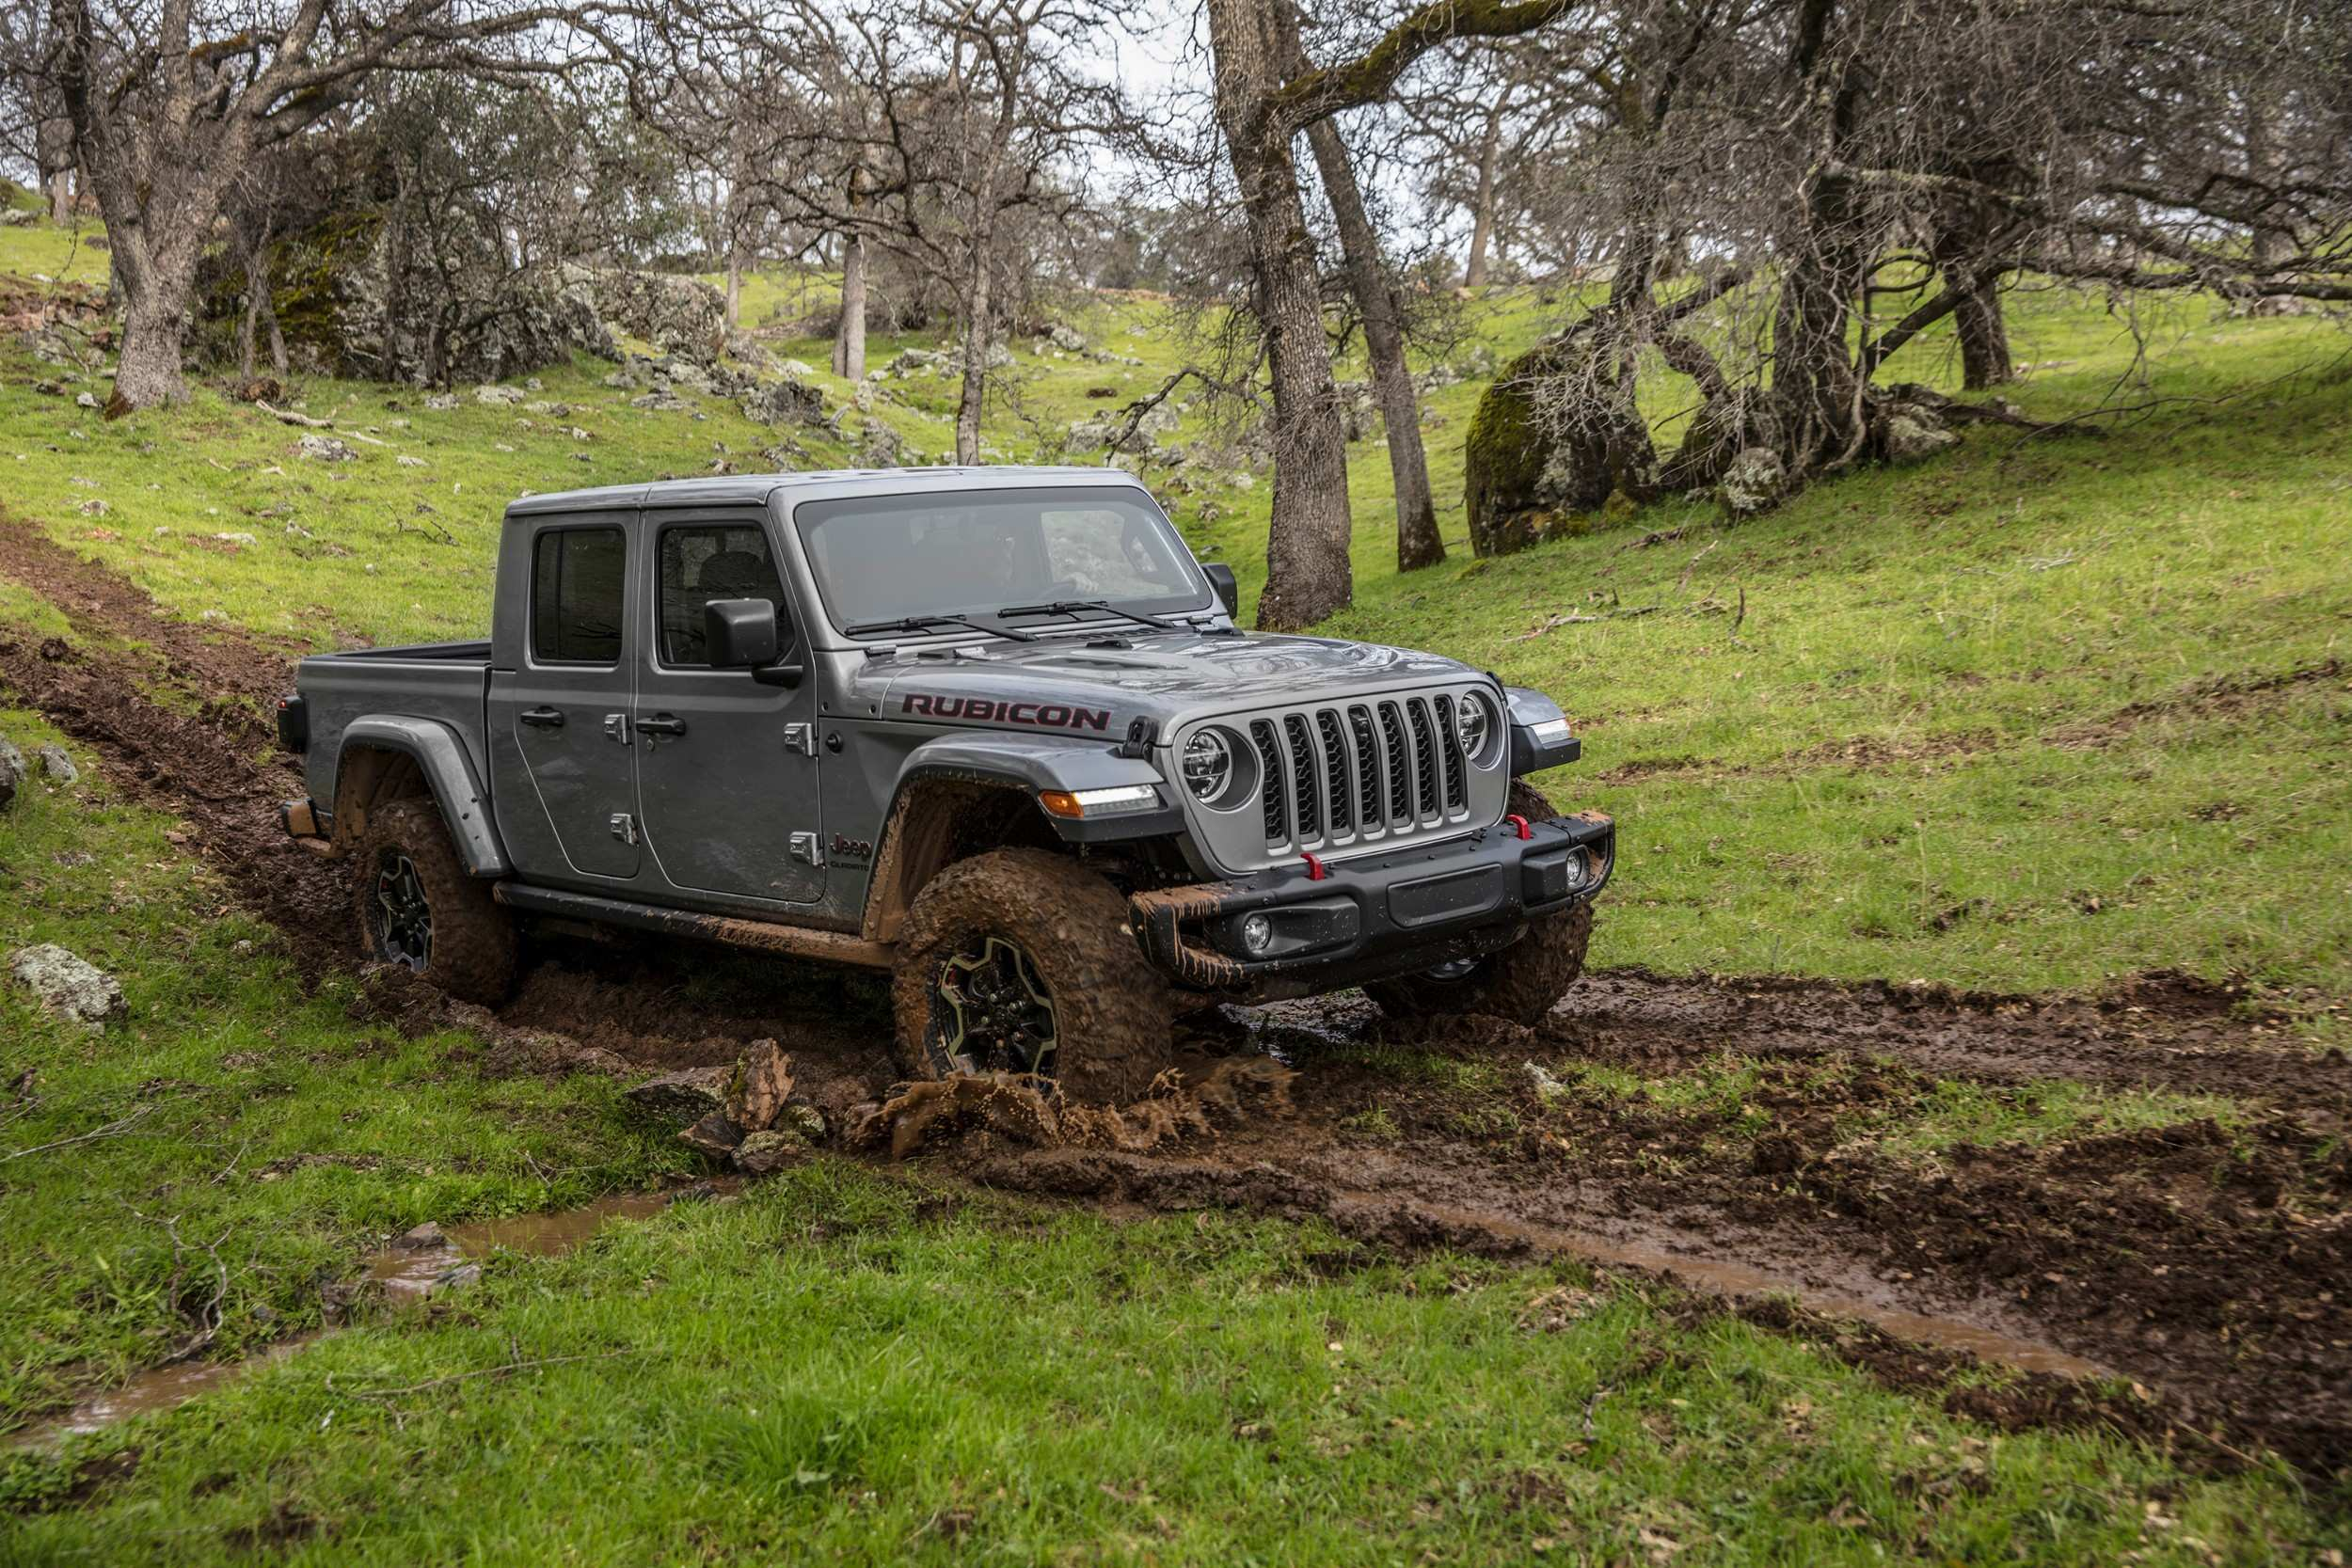 71 All New 2019 Vs 2020 Jeep Wrangler History